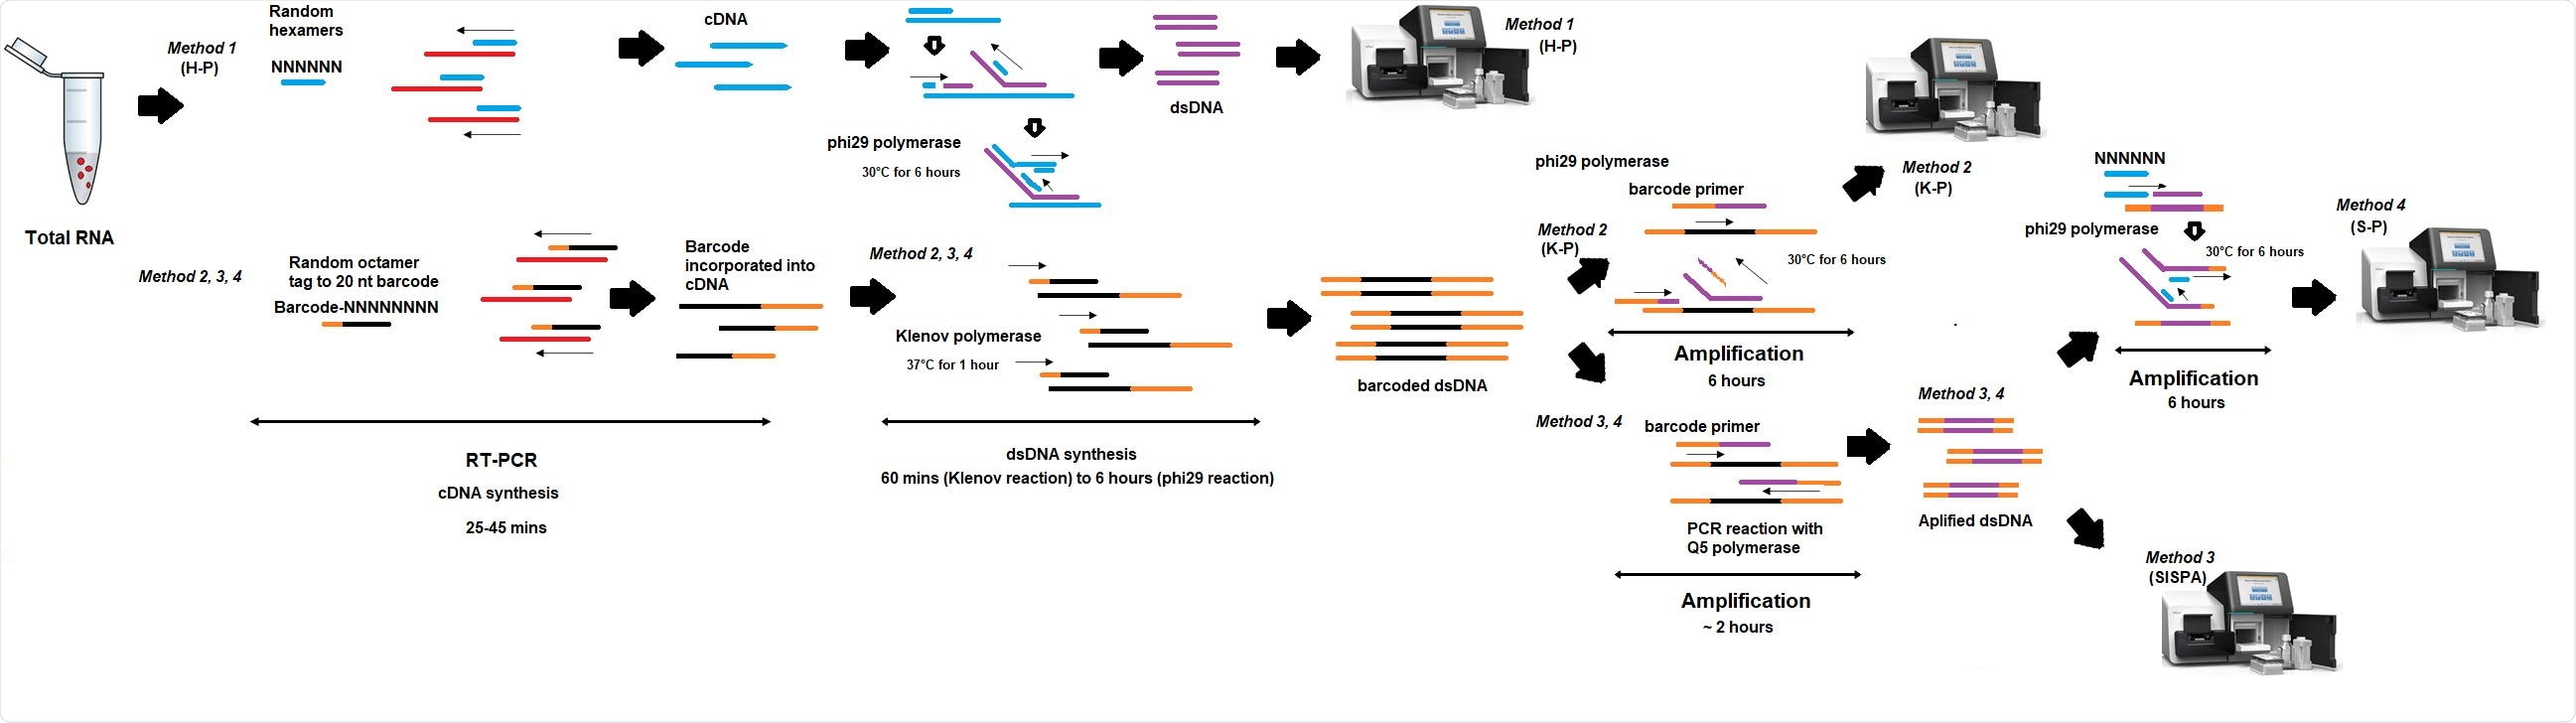 Schema of random amplification methods for whole genome assembly of SARS613 Cov-2 virus genome. Method 1 (H-P) is based on the RT-PCR step with random hexamers primer (6Ns) followed by phi29 polymerase isothermal amplification in the presence of 6Ns primer and then library preparation for Illumina sequencing. Method 2 (K-P), random octamer tagged with 20 nucleotide known tag sequence (5`- GACCATCTAGCGACCTCCACNNNNNNNN-3`) (K-8N) was used for RT-PCR step, followed by phi29 polymerase isothermal amplification in the presence of tagged primer K-8N and then library preparation and Illumina sequencing. Method 3, Sequence-Independent, Single620 Primer Amplification (SISPA) technique, followed by library preparation and Illumina sequencing. Method 4 (S-P), following SISPA amplification (Method 3), phi29 polymerase isothermal amplification in the presence of random hexamers (6Ns) was applied and then used for Illumina sequencing